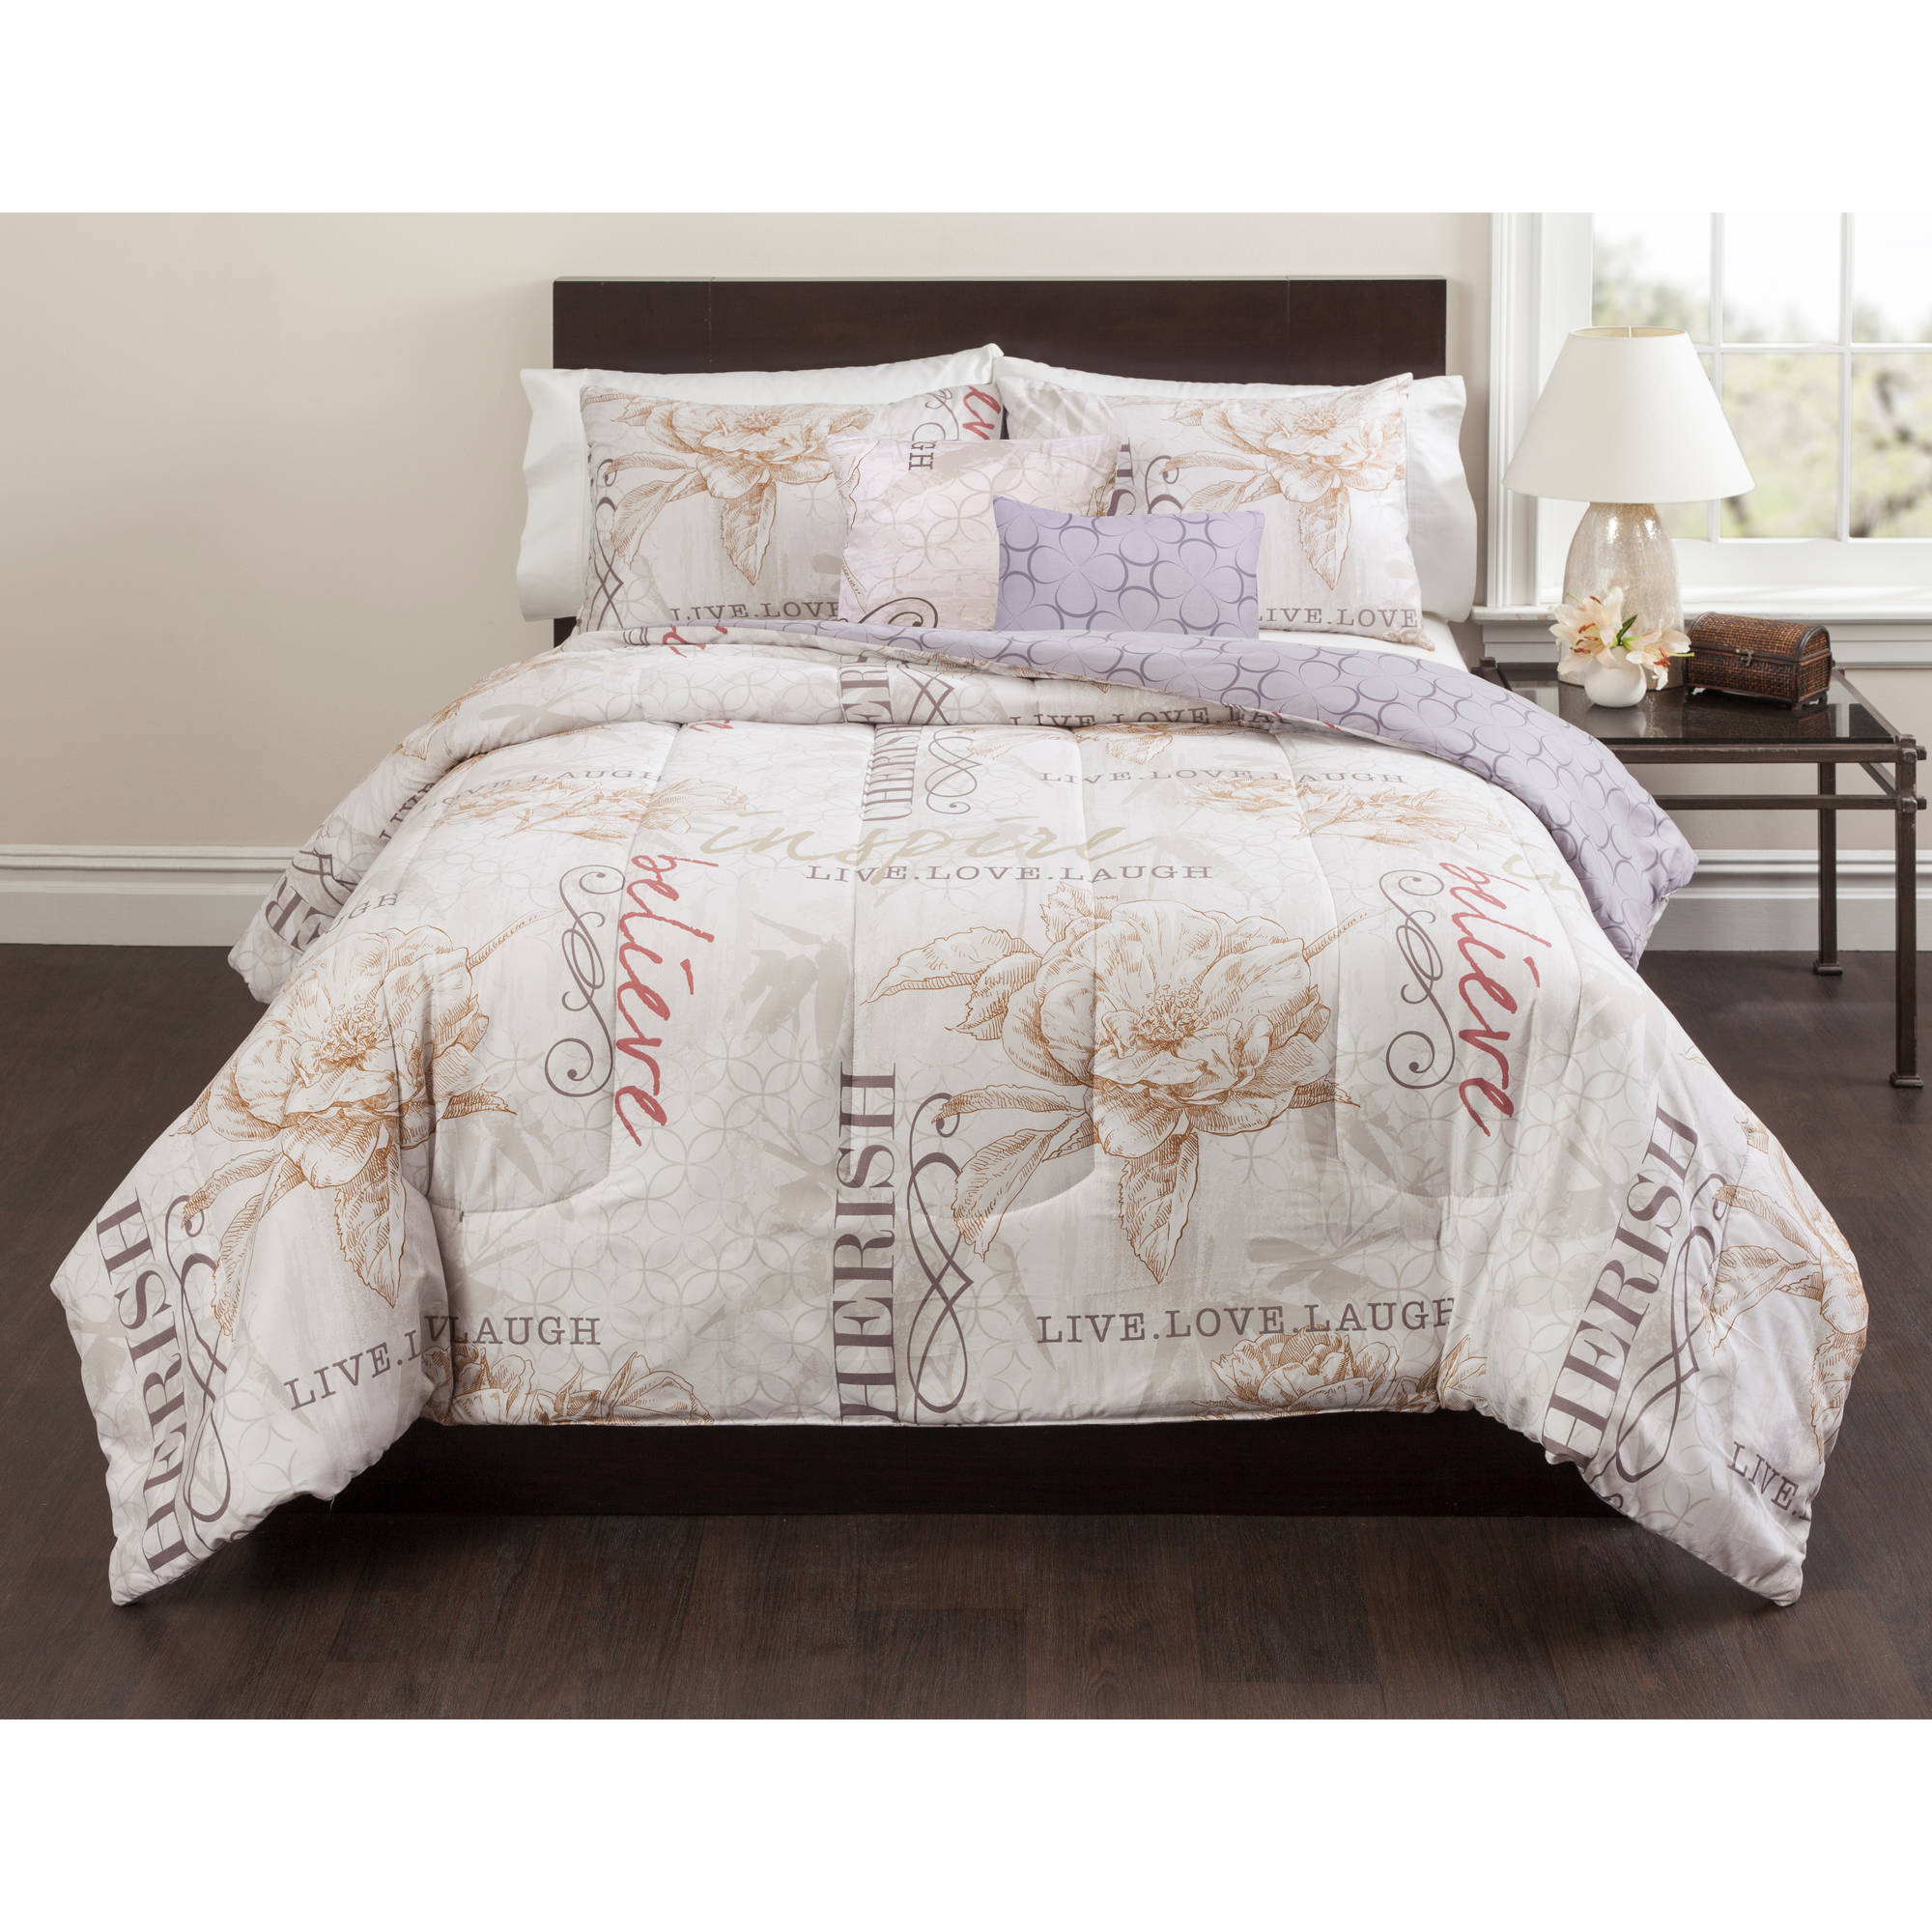 Casa Live, Laugh, Love 5-Piece Bedding Comforter Set - Walmart.com